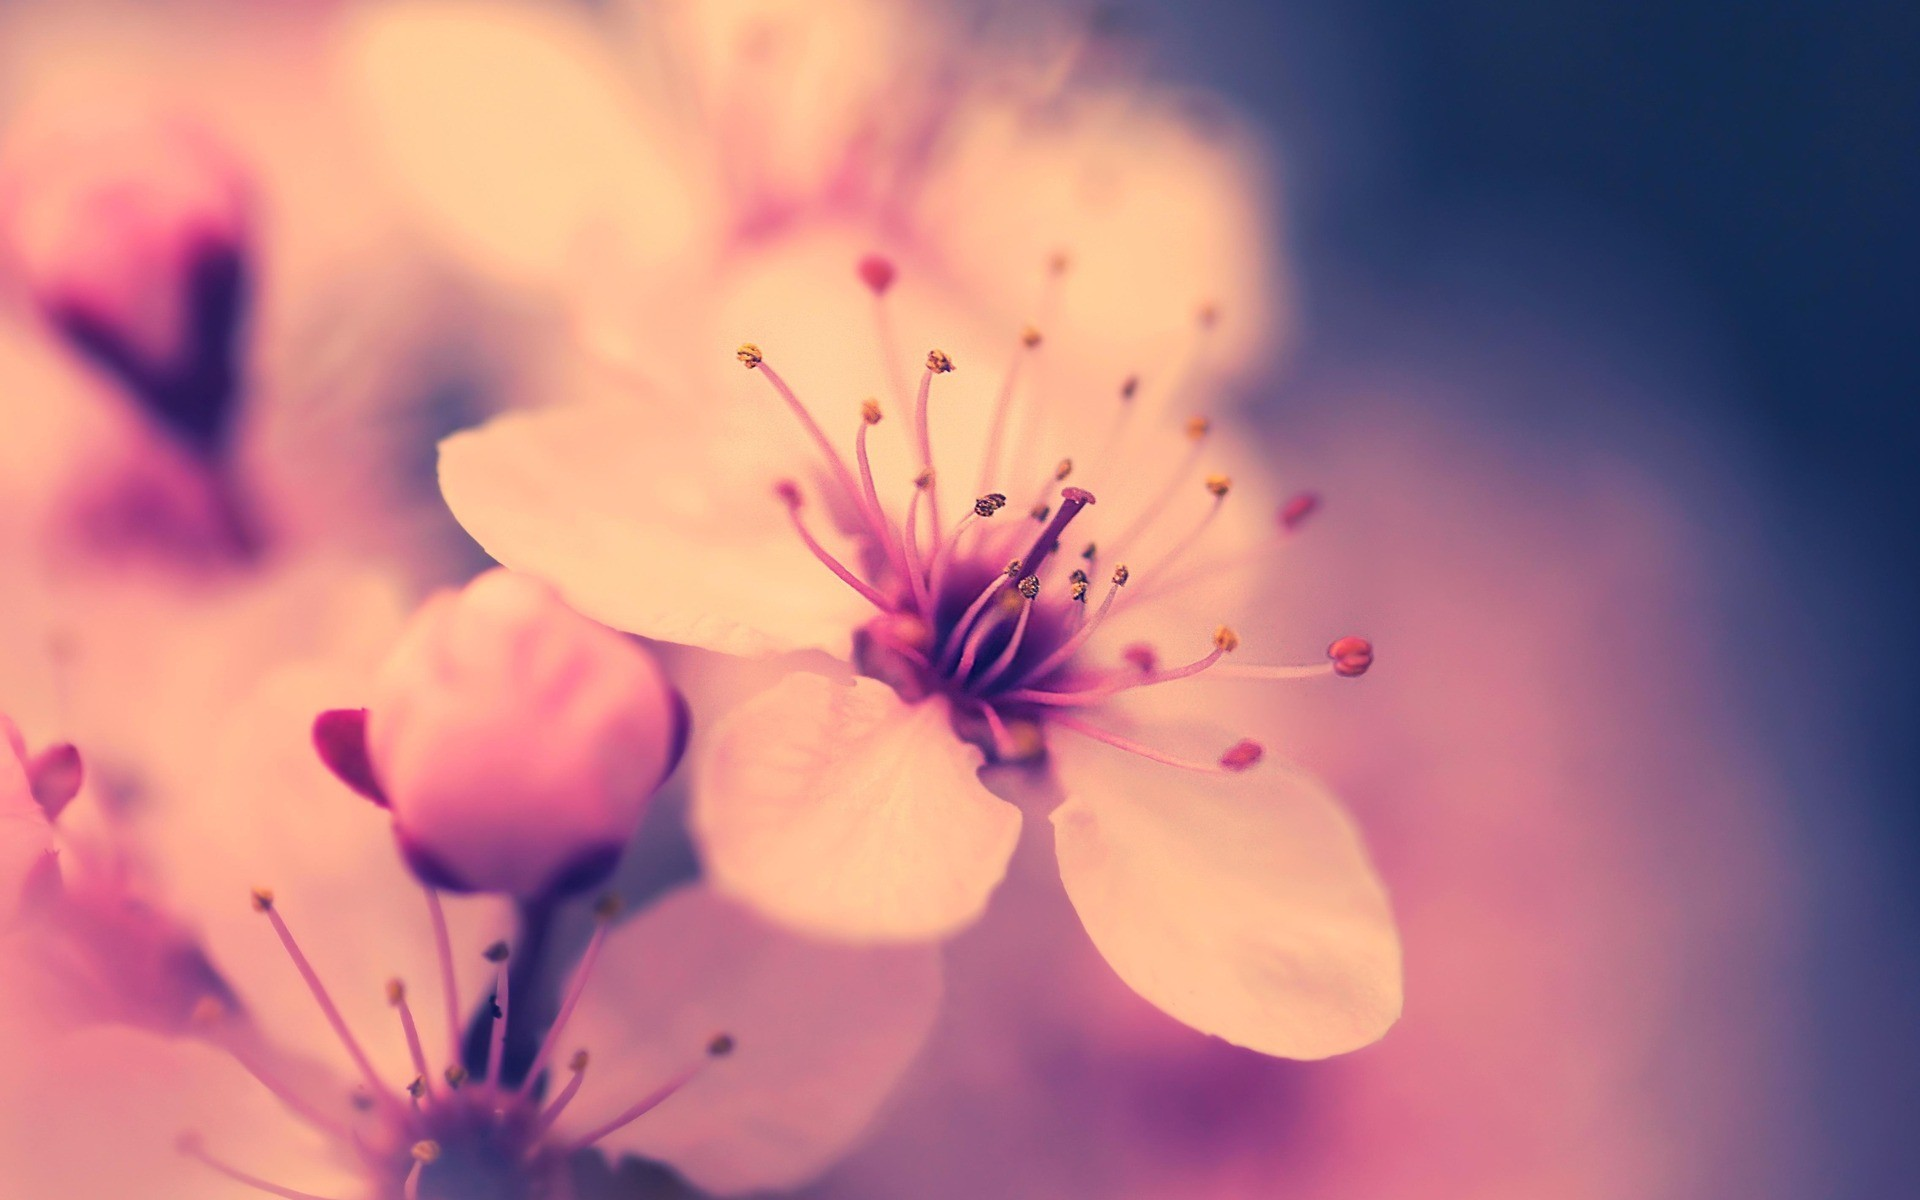 Fondos Flores Hd: Cherry Blossom Wallpaper ·① Download Free Backgrounds